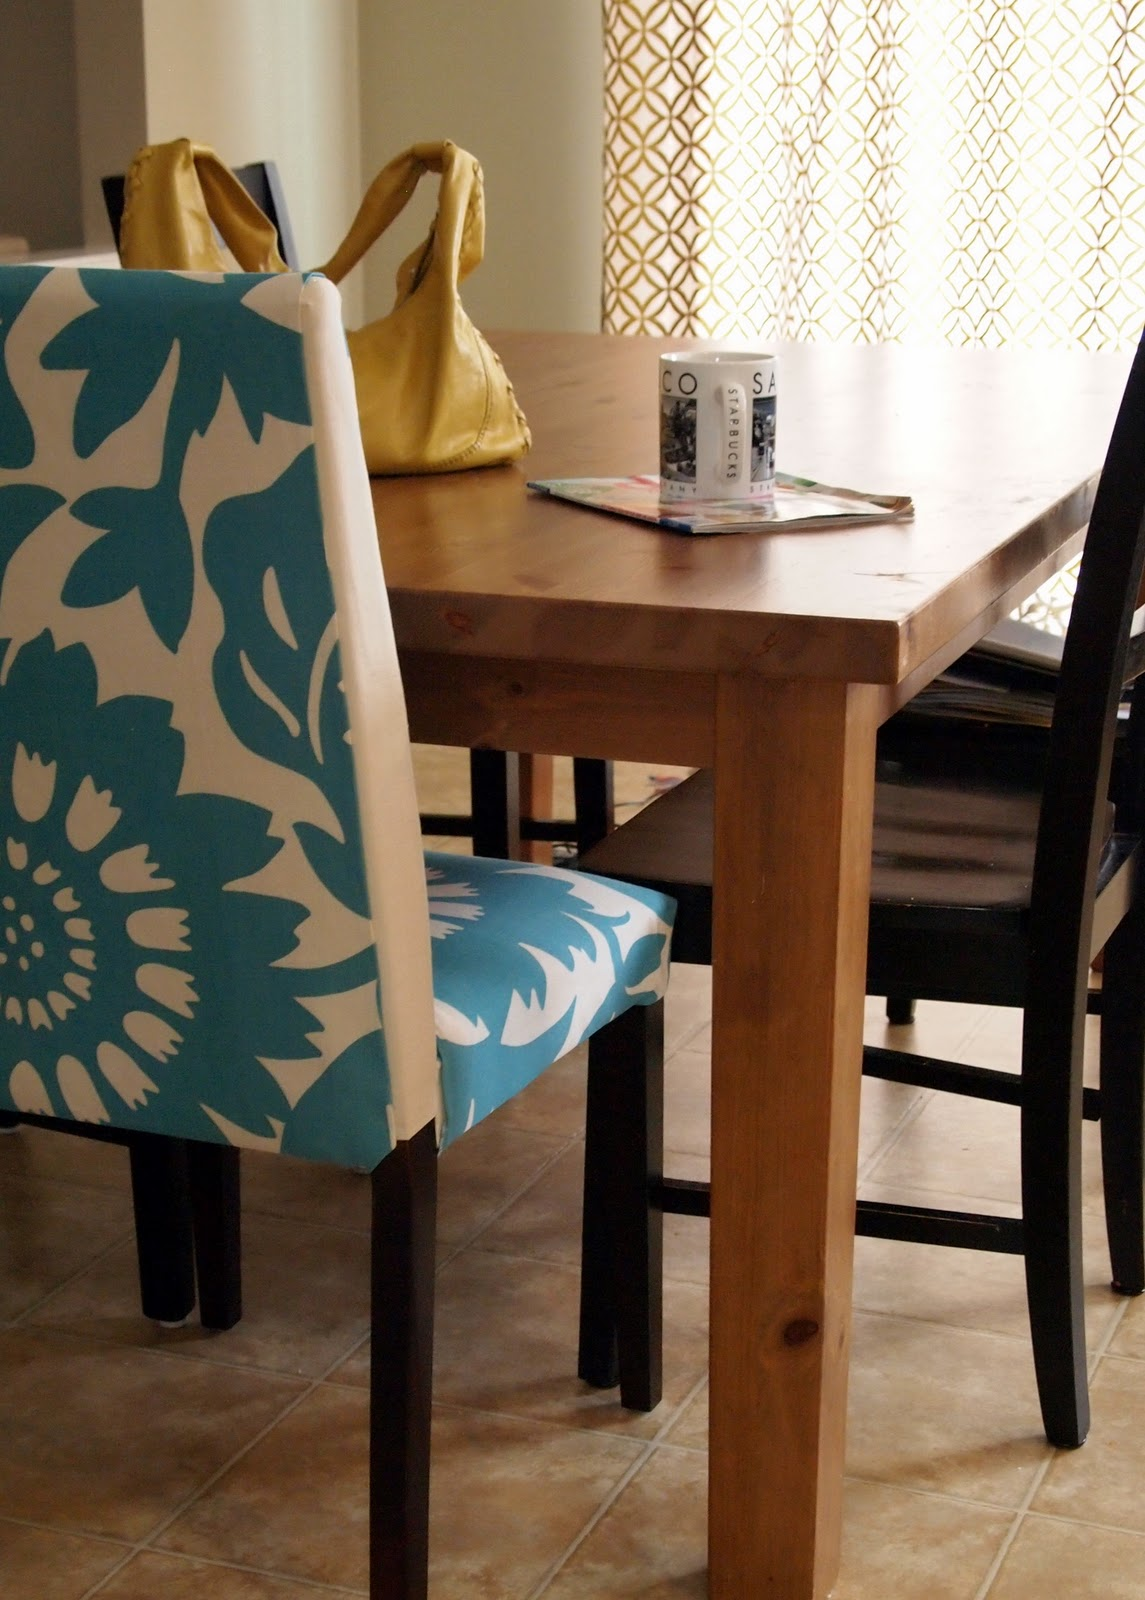 Diy Parsons Chair Covers Fishing Pole Holder Loveyourroom My Morning Slip Cover Project Using